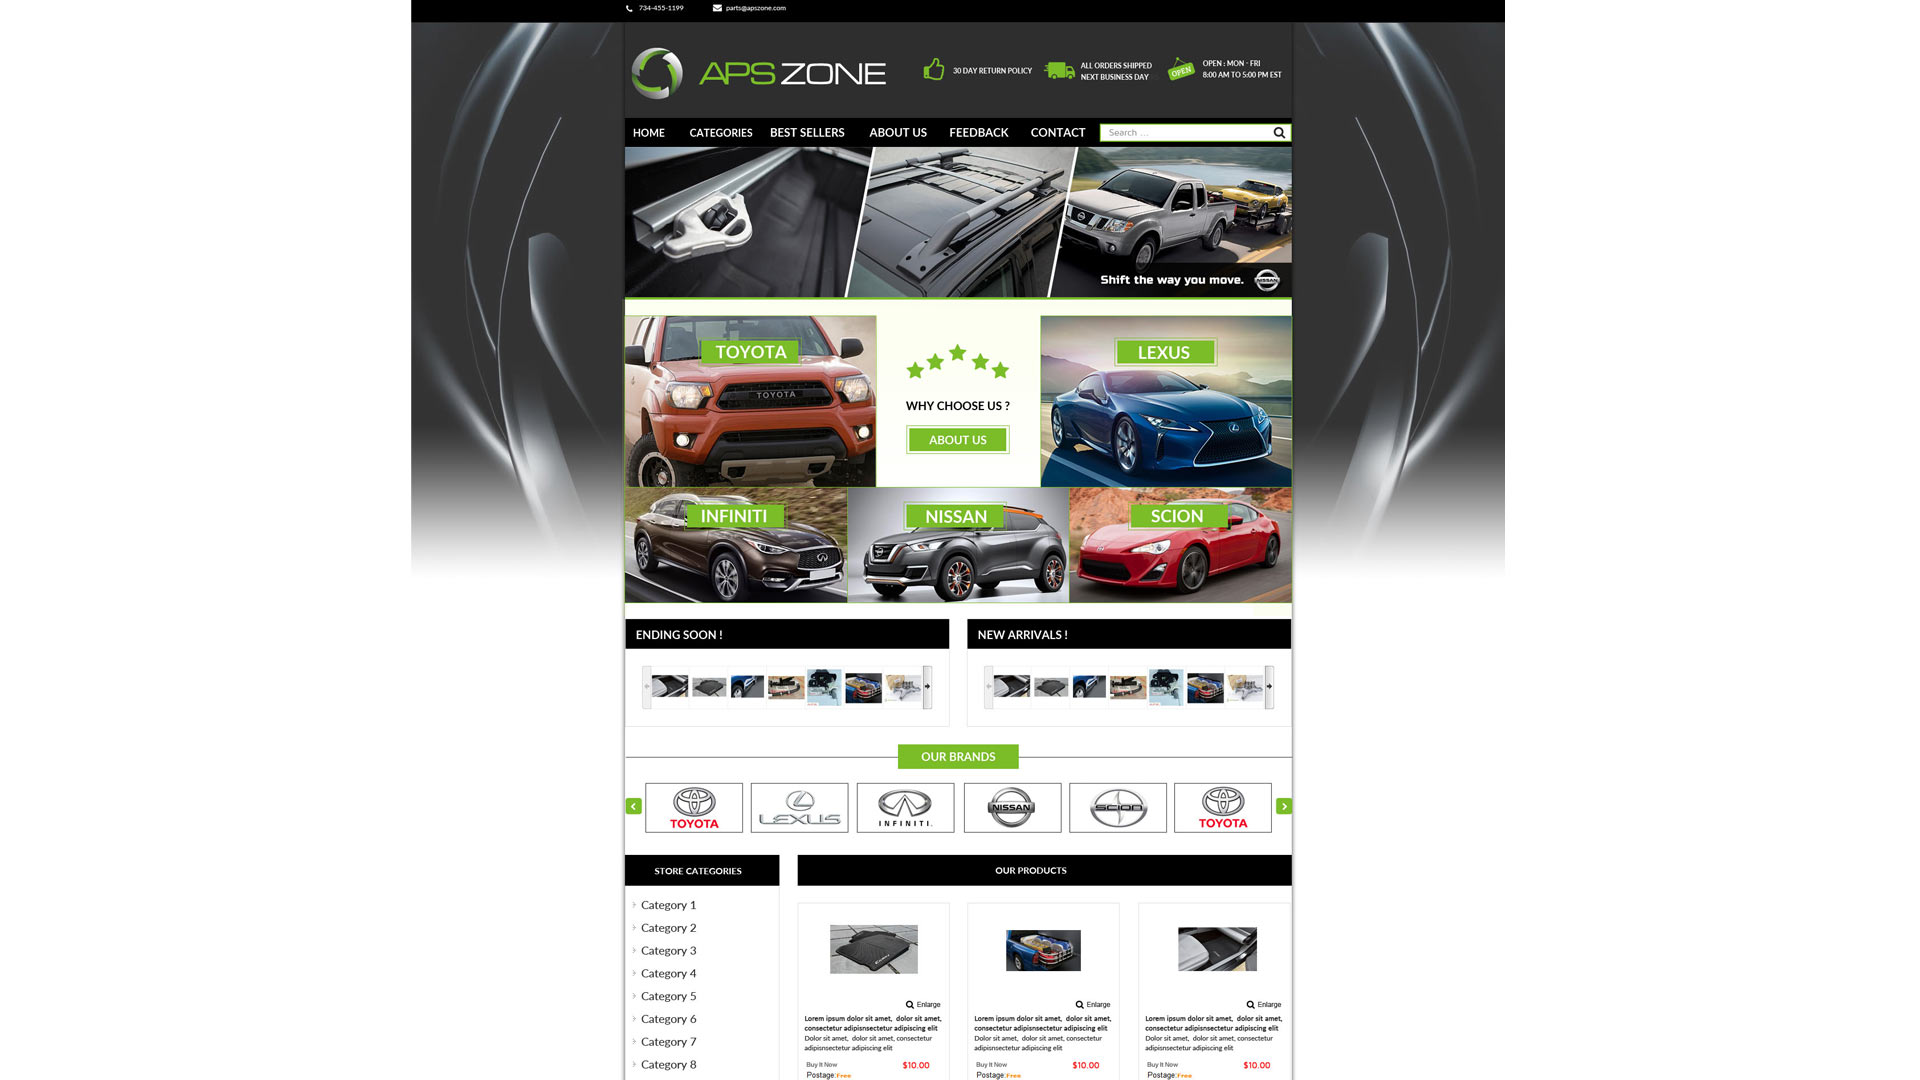 Apszone template ebay store zeinebay category templates stores ebay zeinebay pronofoot35fo Image collections